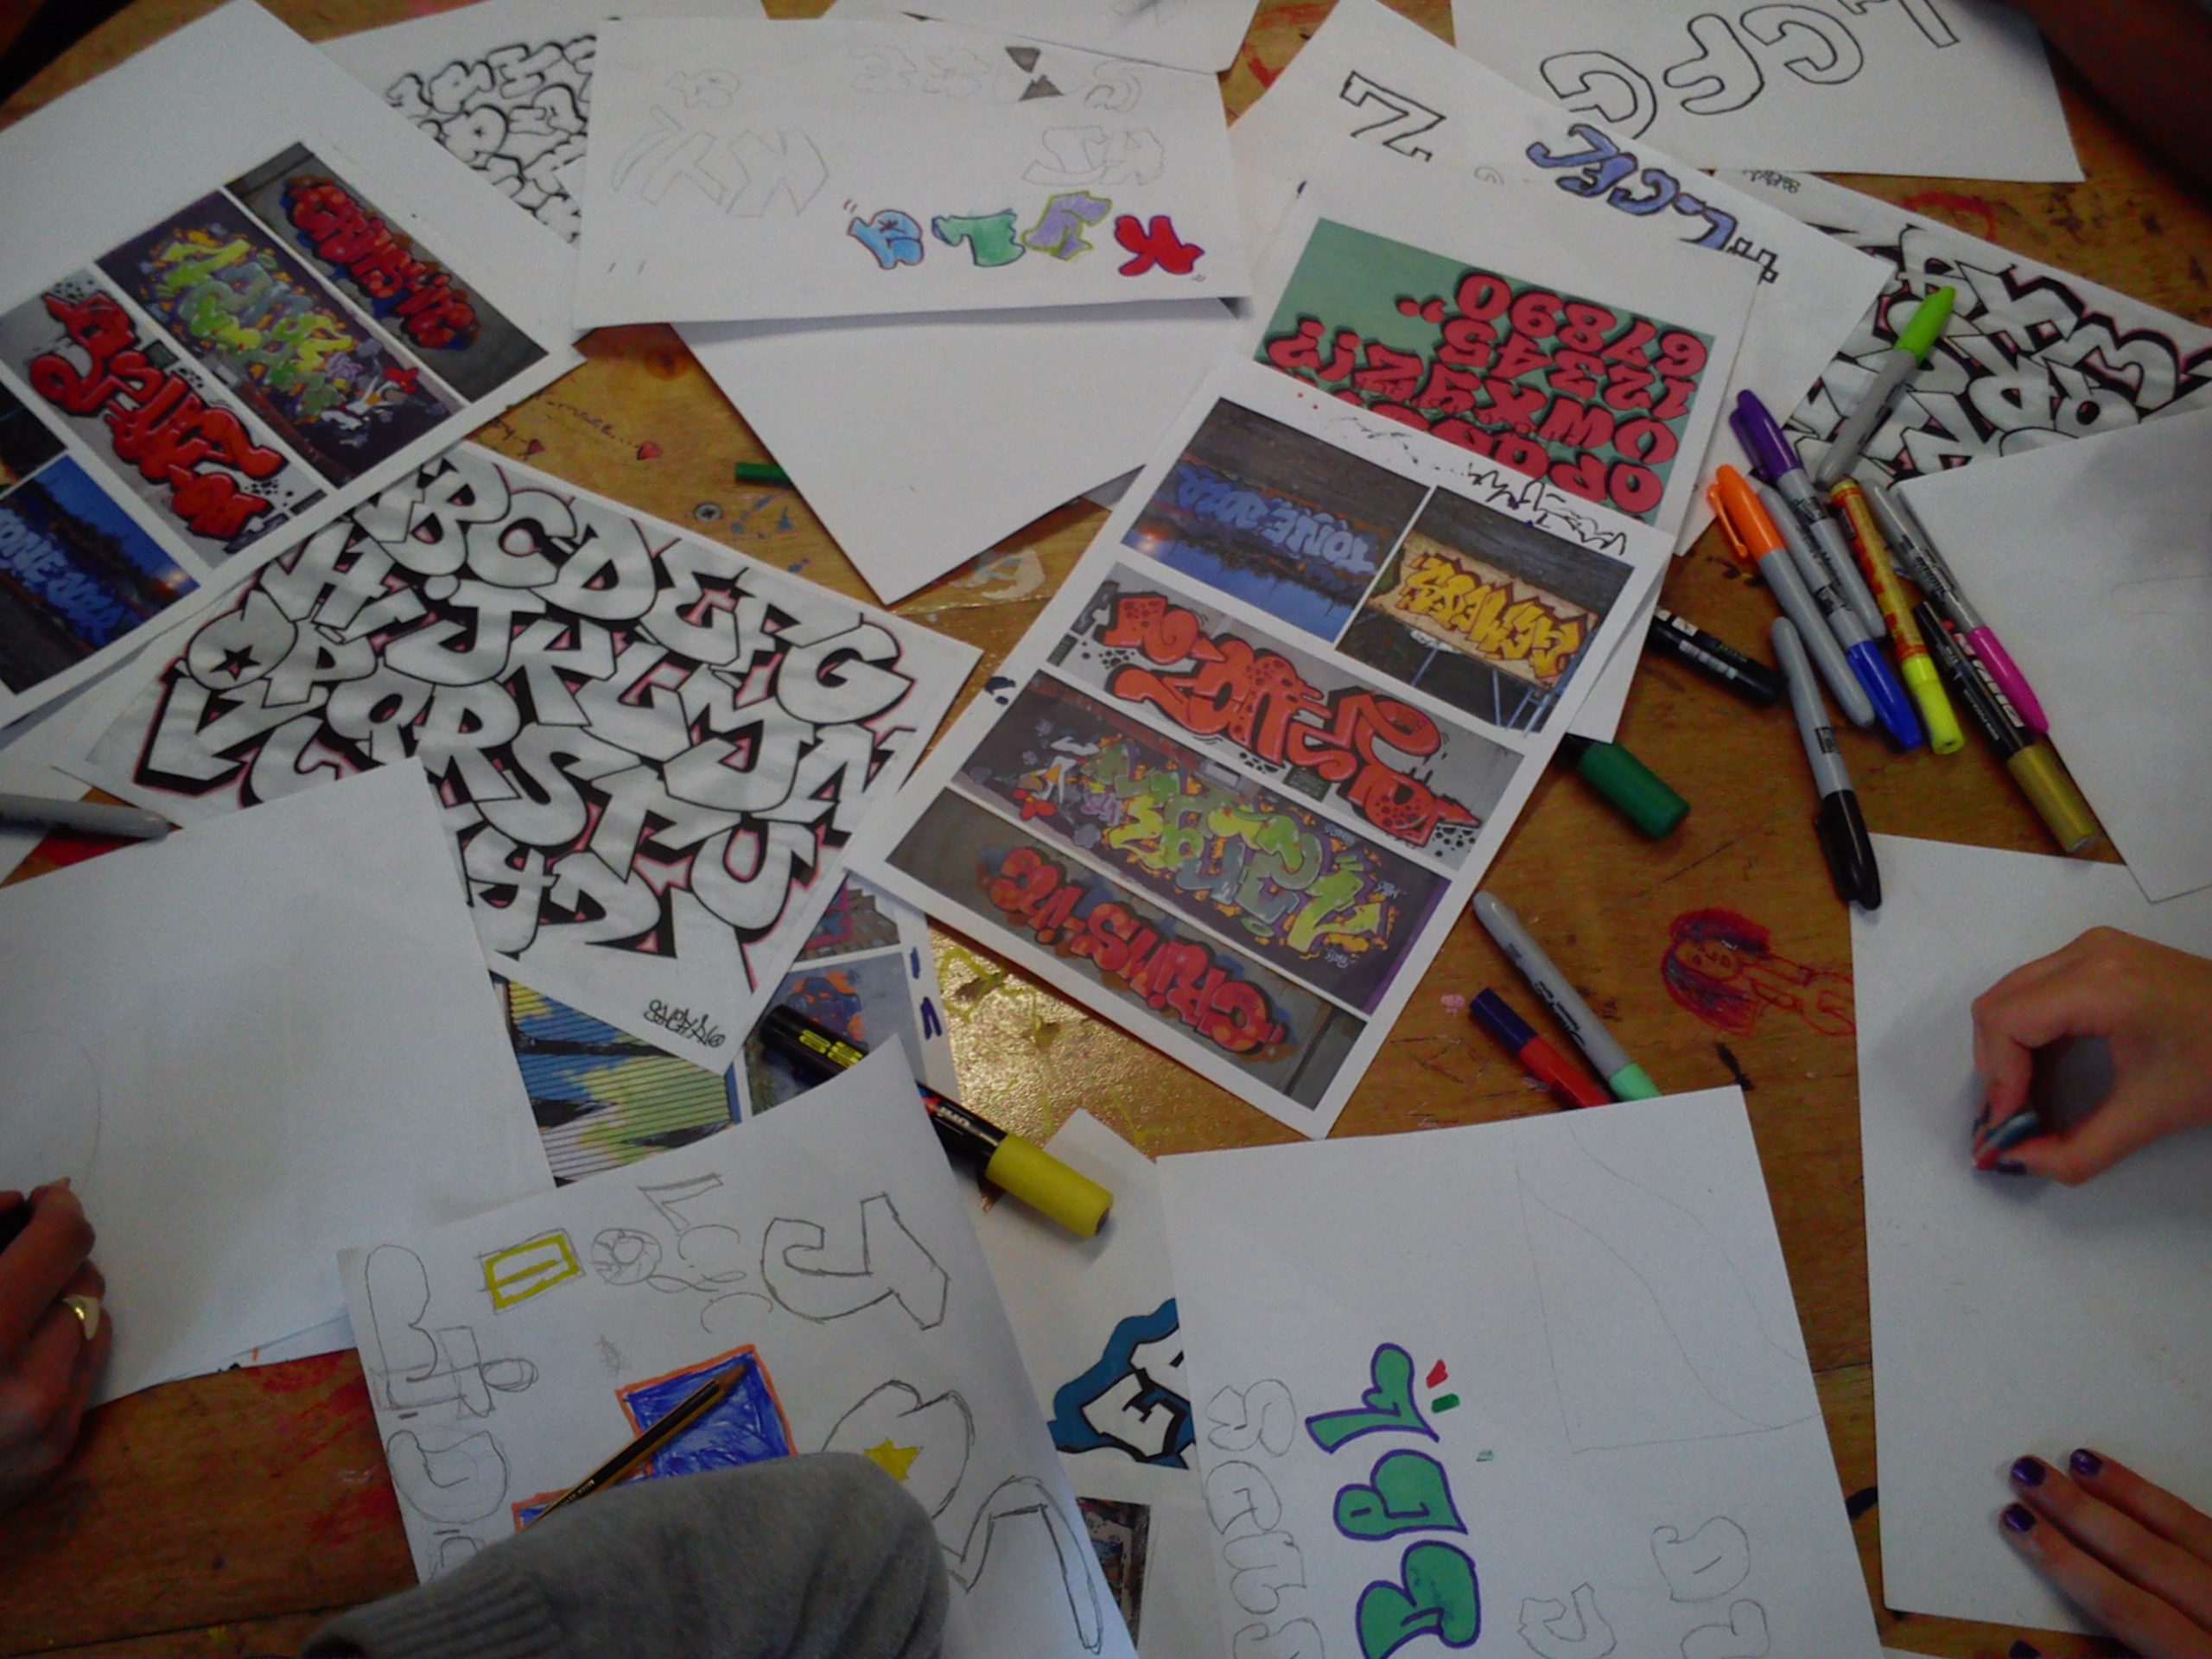 A wooden table with examples of colourful graffiti tags, Posca pens & the hands of young people creating their own tags